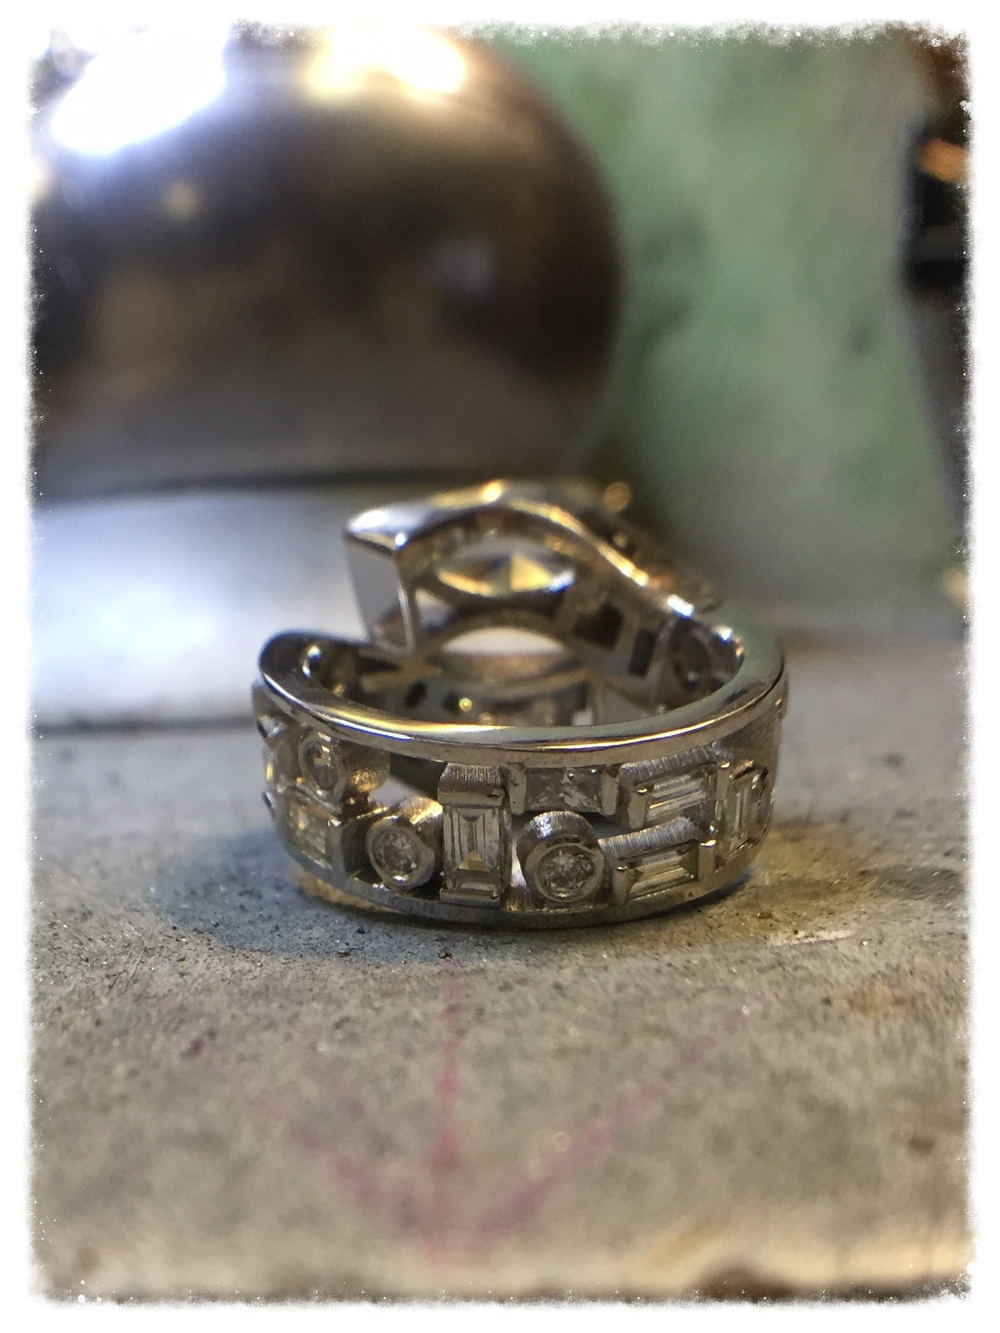 The stones have been set and now the ring is ready for finishing.